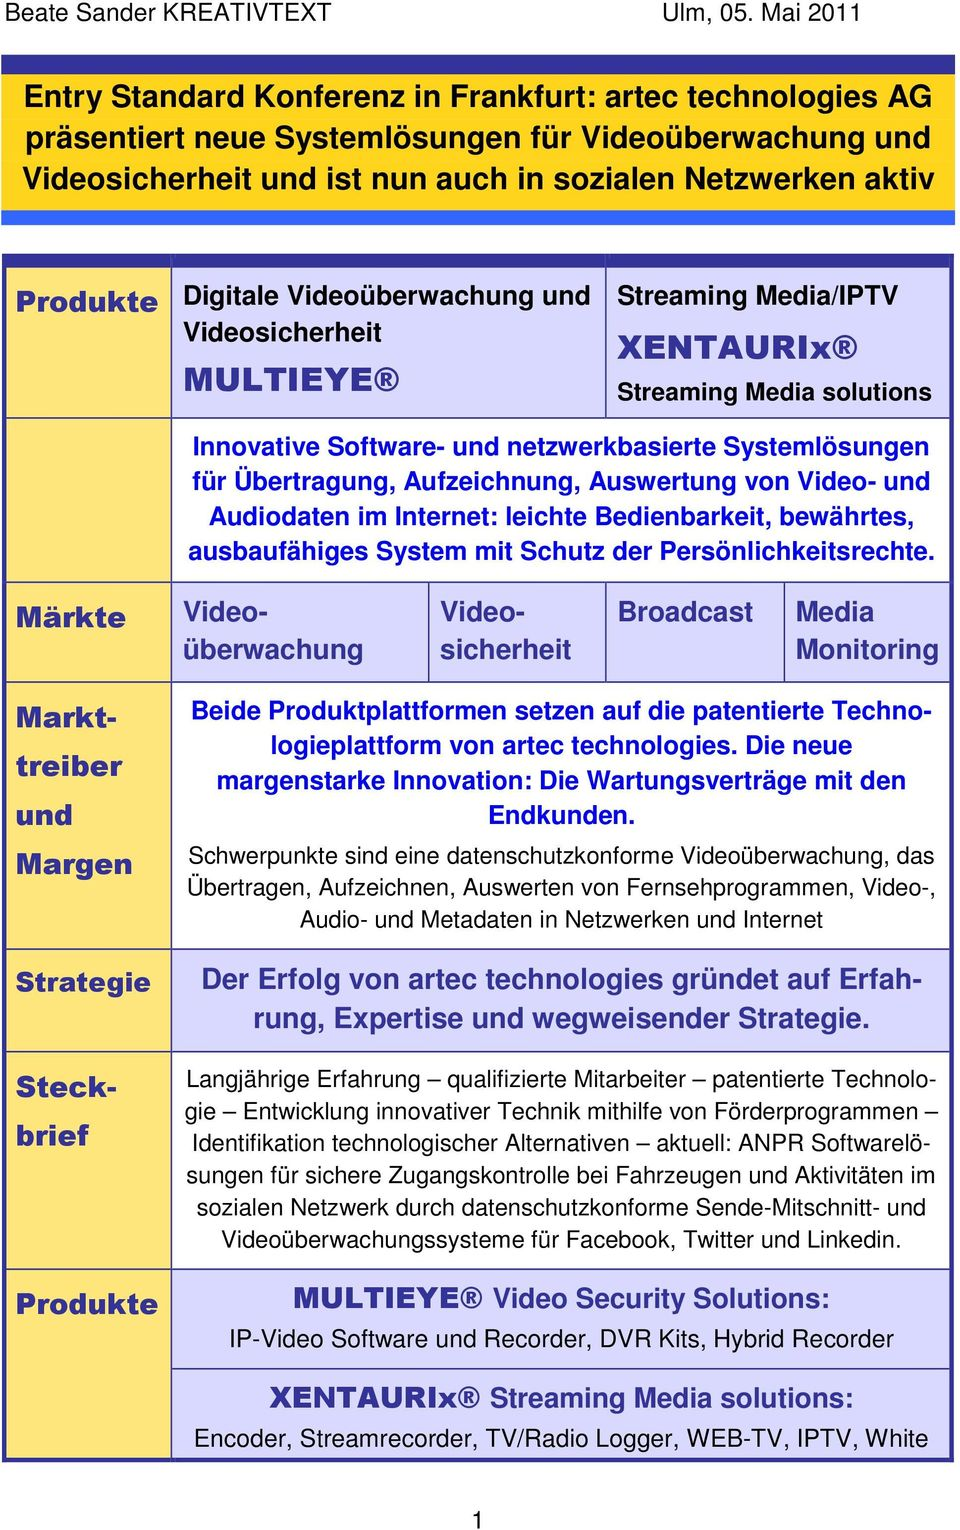 Digitale Videoüberwachung und Videosicherheit MULTIEYE Streaming Media/IPTV XENTAURIx Streaming Media solutions Innovative Software- und netzwerkbasierte Systemlösungen für Übertragung, Aufzeichnung,